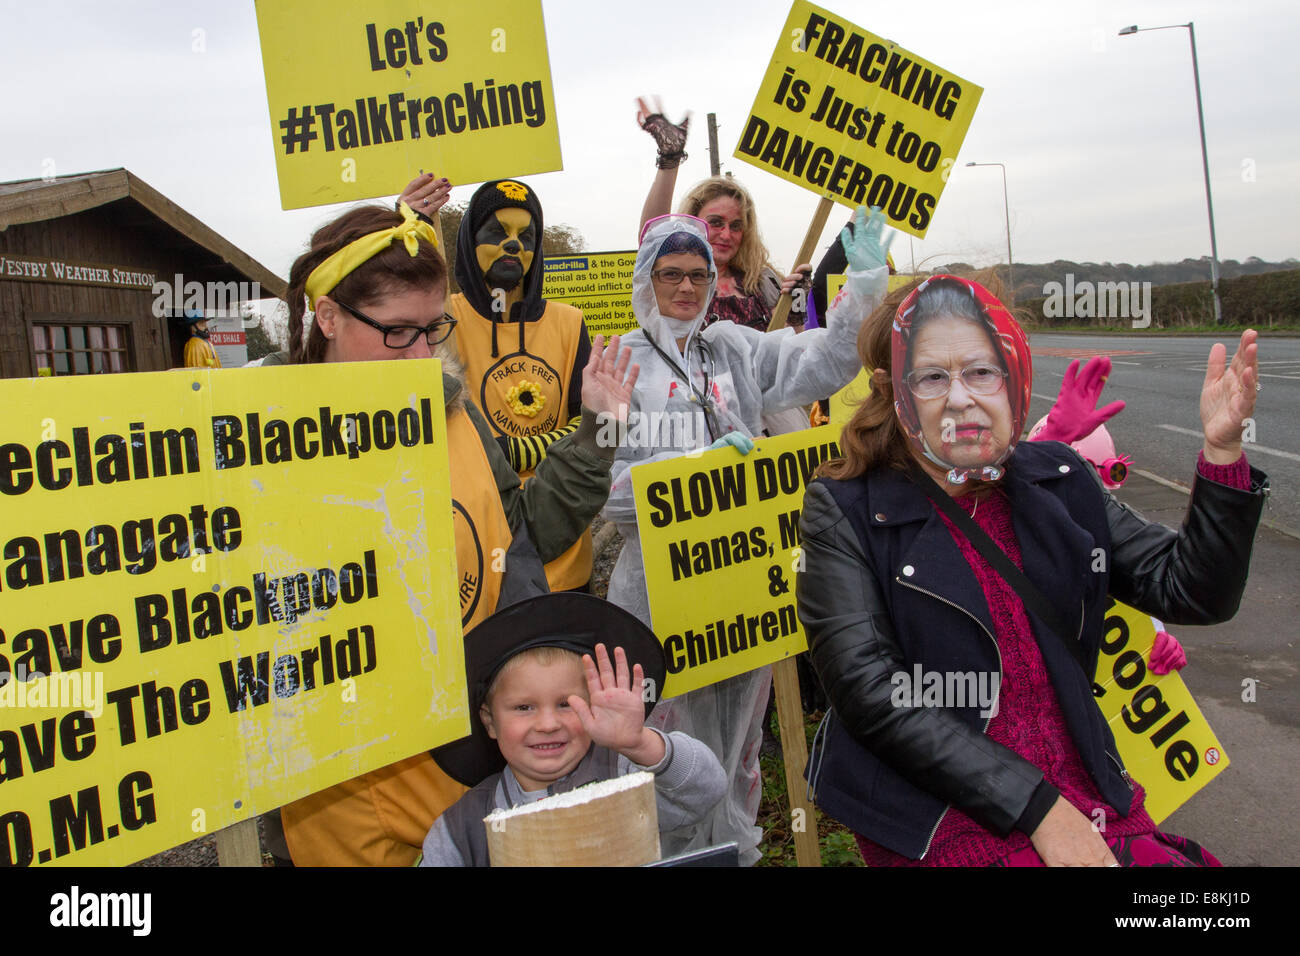 Westby Nr Blackpool, Lancashire, UK 31st October, 2014. Local Residents opposed to proposed fracking demonstrate - Stock Image